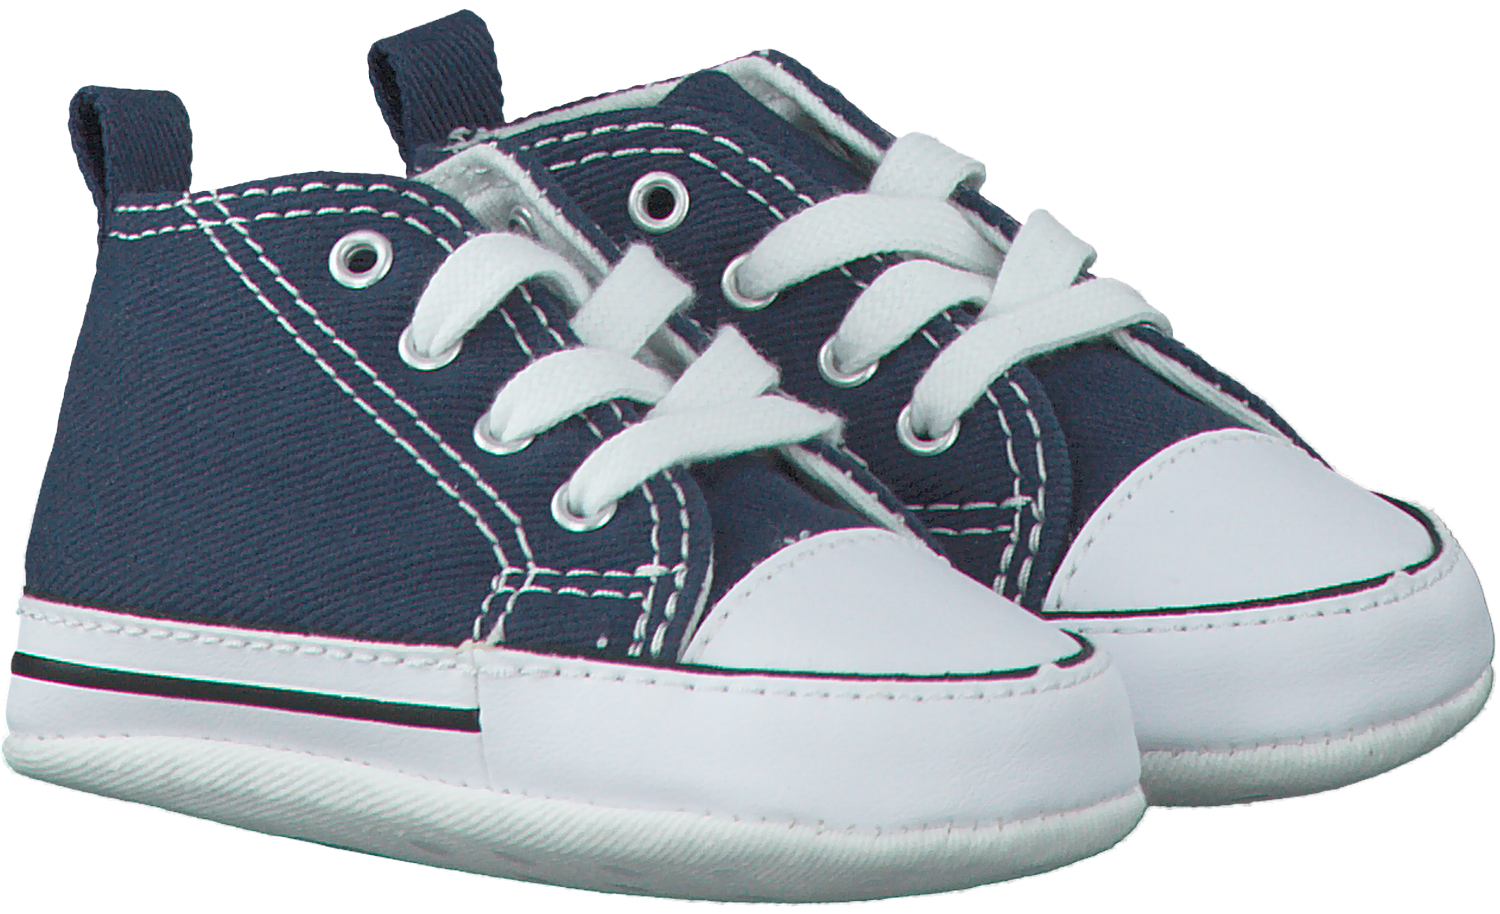 c48b4330594ec8 discount converse crib all star boots in navy main image 54a9b 847b2  italy  blue converse baby shoes first star. converse. previous 70814 81260